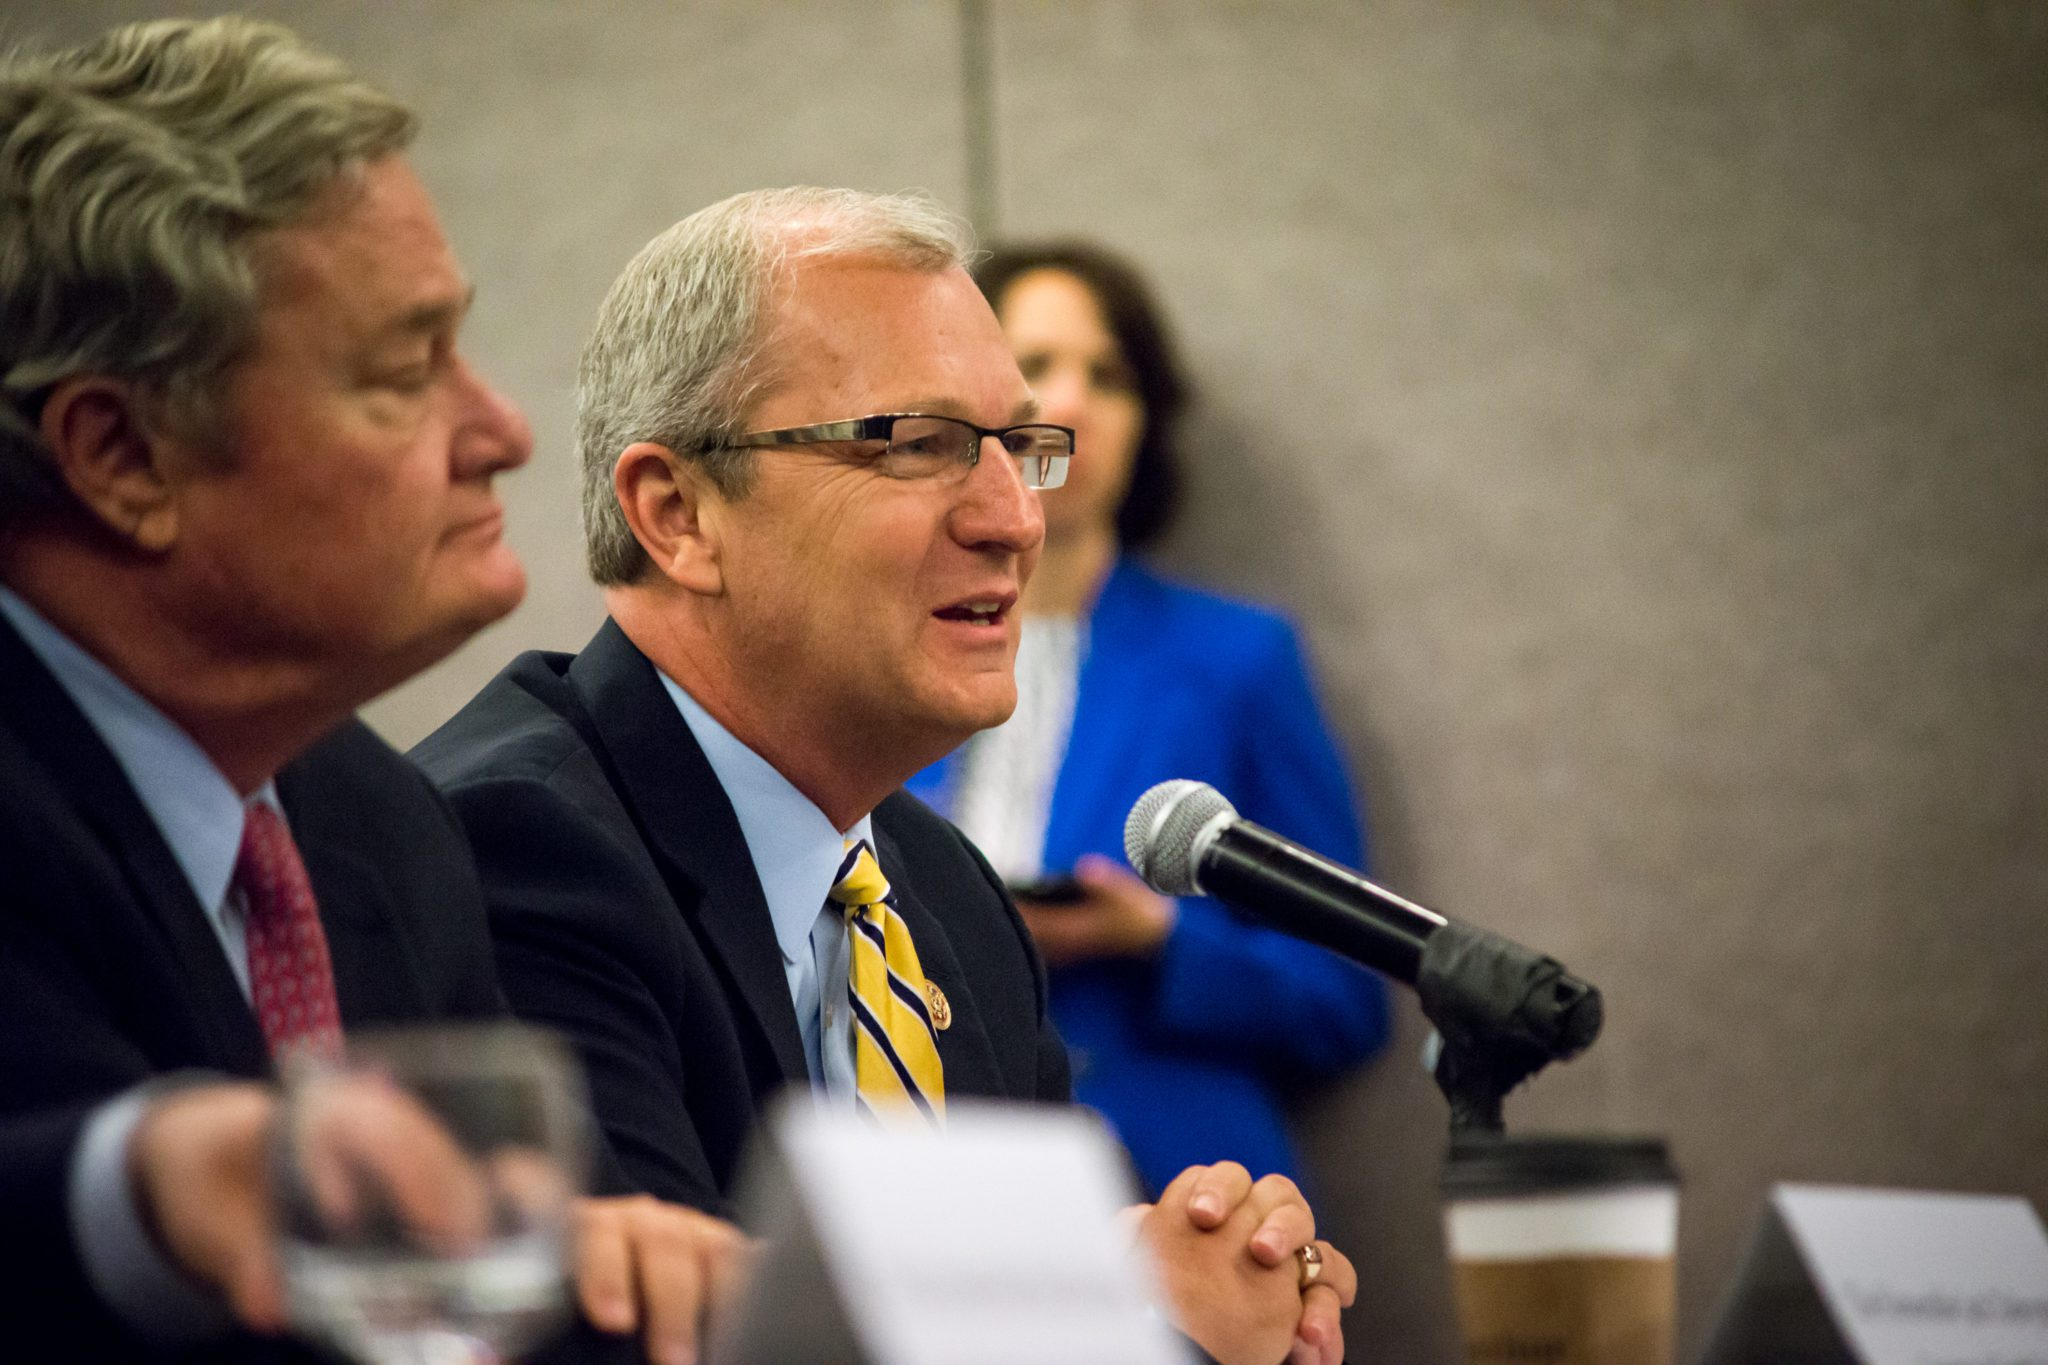 U.S. Rep. Kevin Cramer (R-ND) on the emerging Unmanned Aerial Systems (UAS) industry